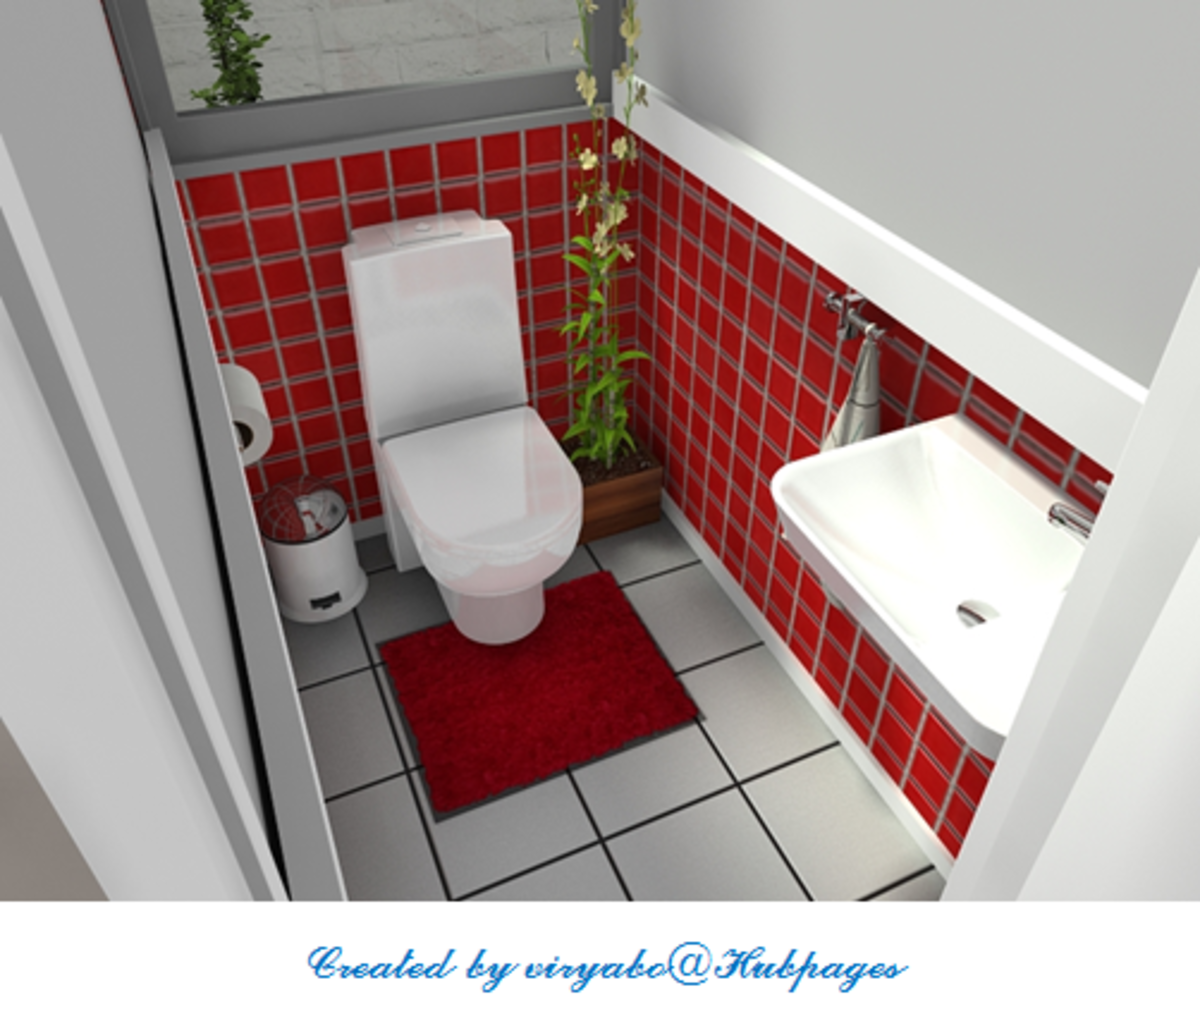 Best Kitchen and Bathroom Design Software